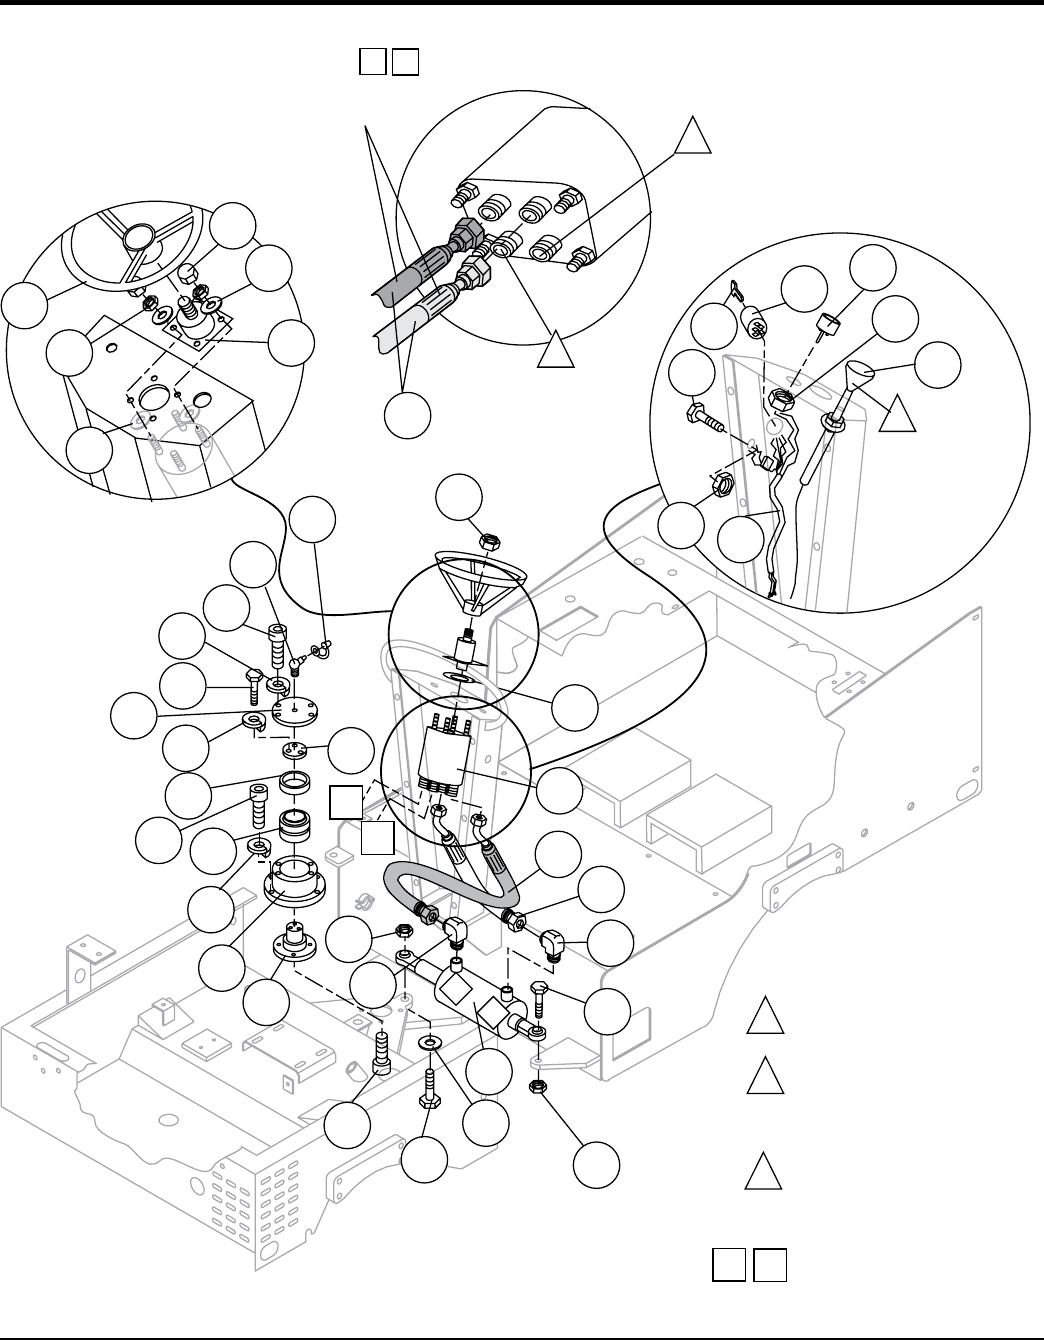 Page 58 ar13ha ar13har roller s n 110301 up operation and parts manual rev 0 06 22 11